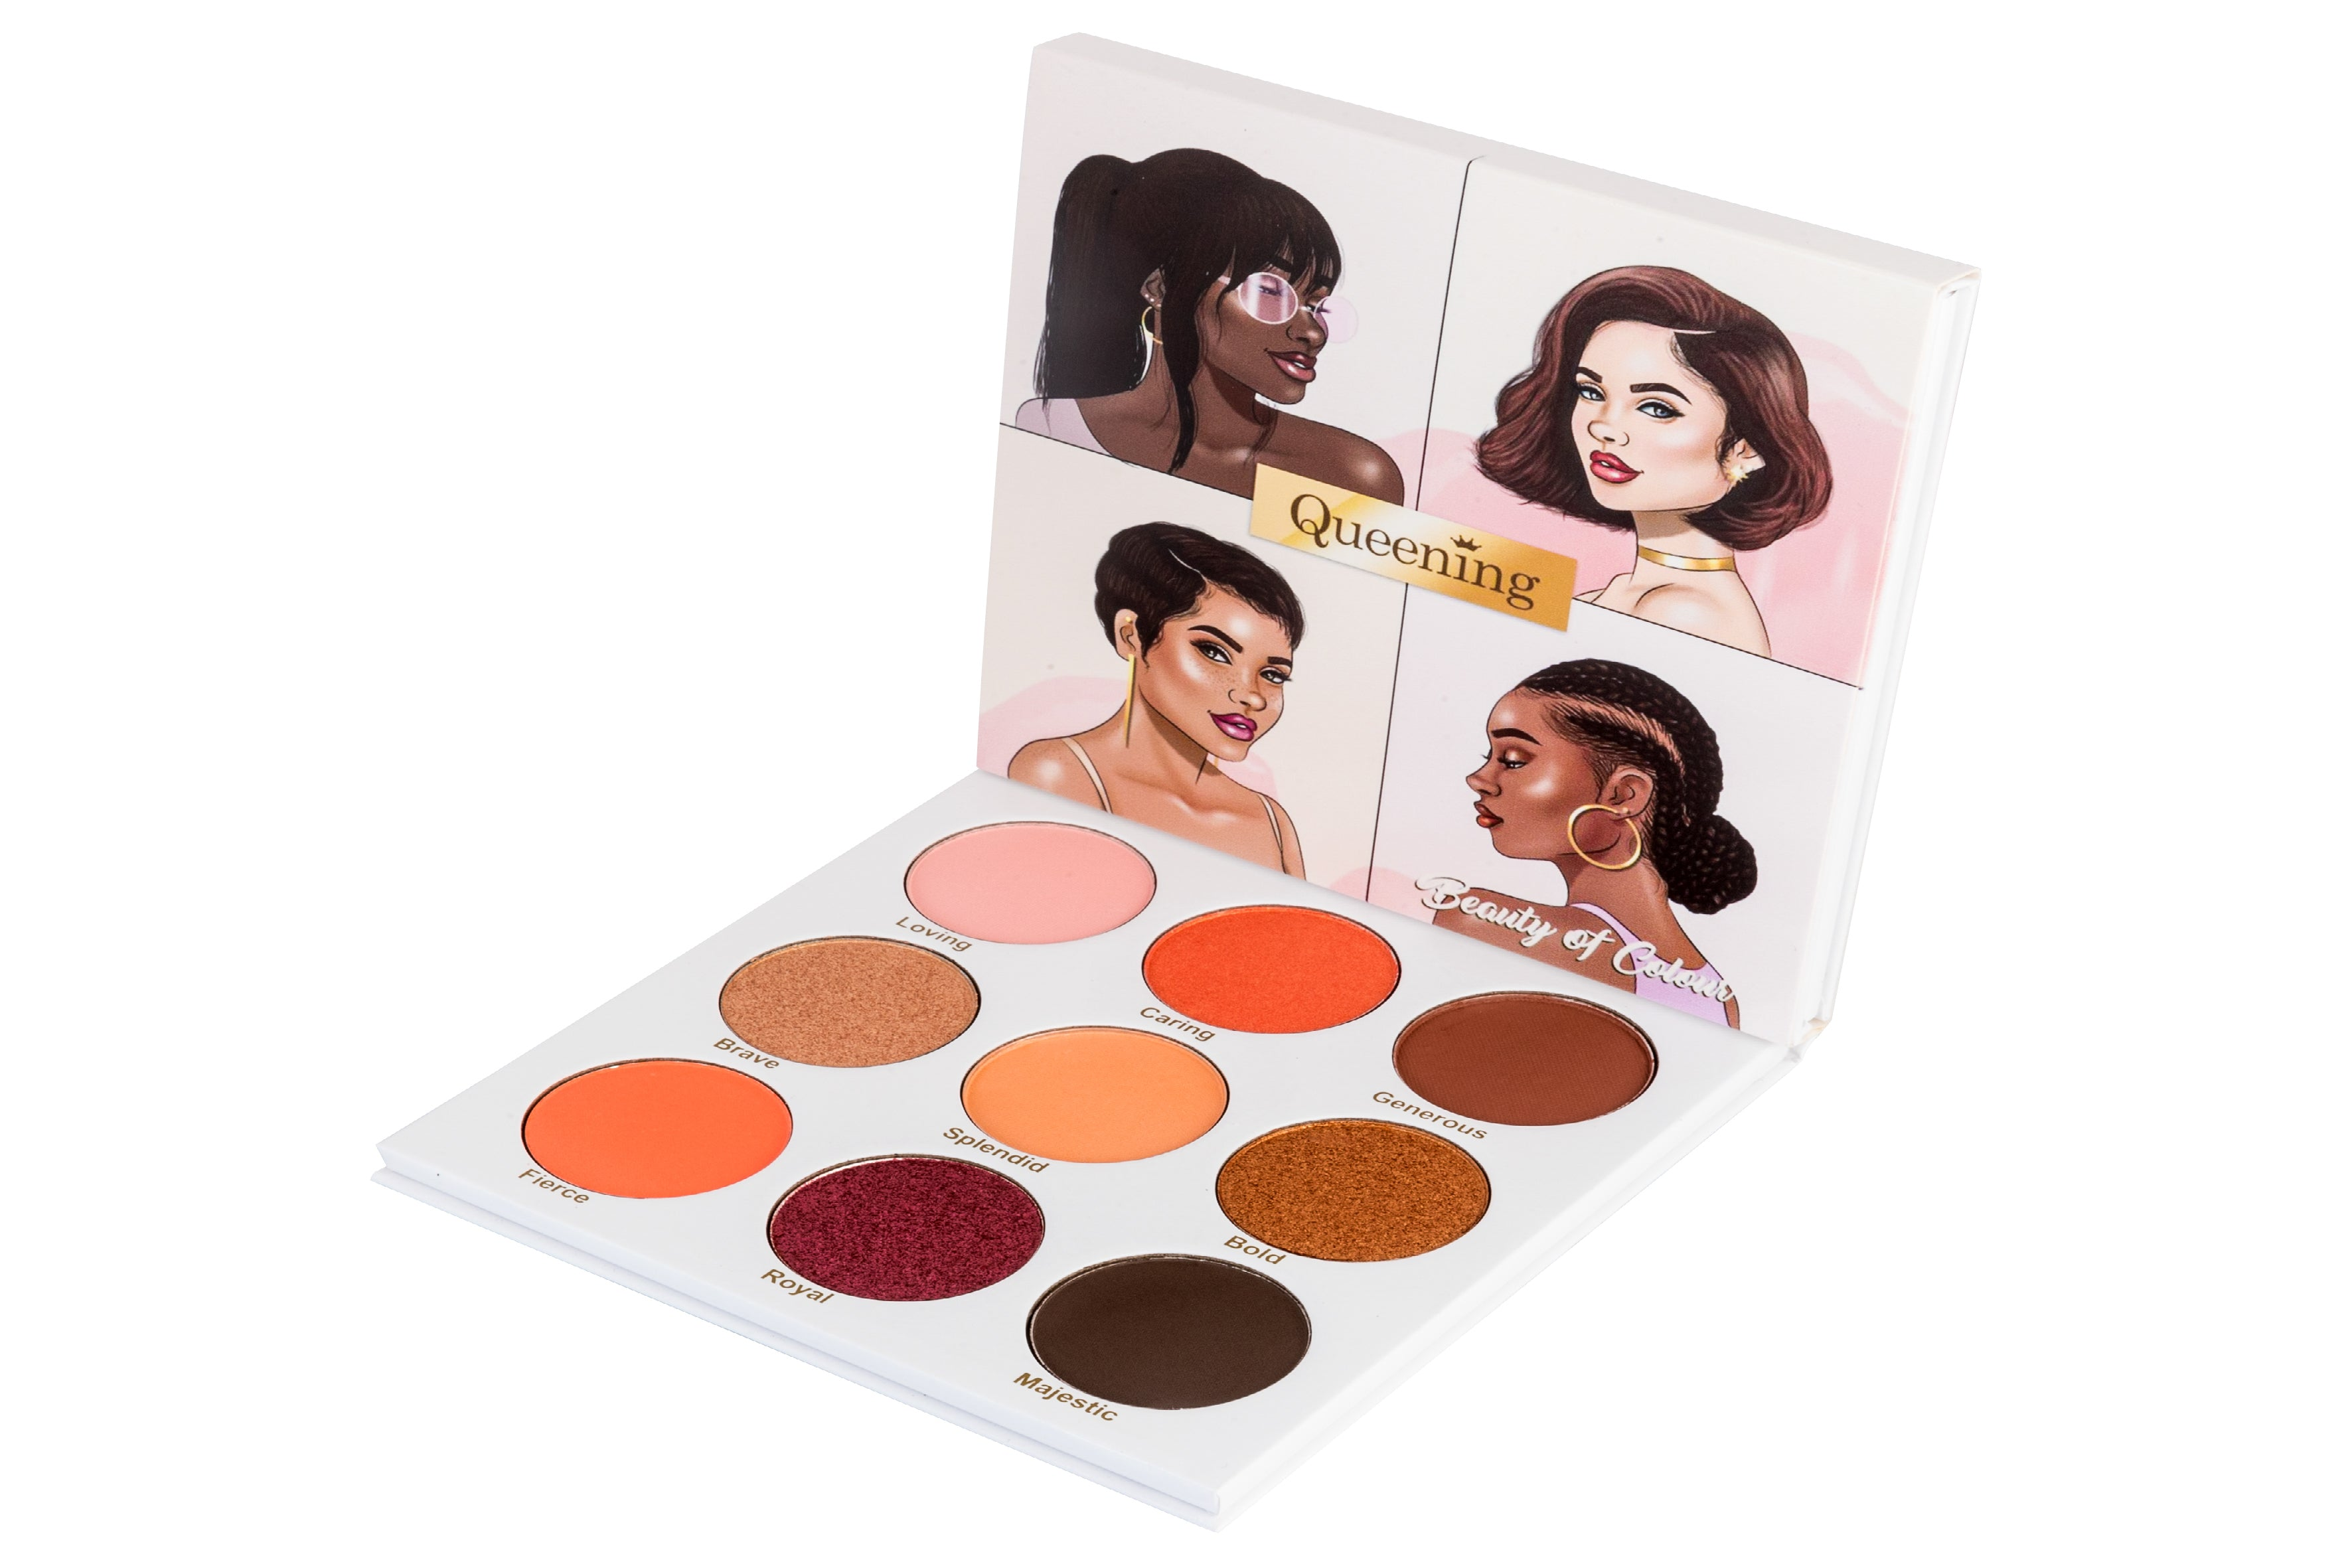 Queening Eyeshadow palette | Beauty of Colour Cosmetics